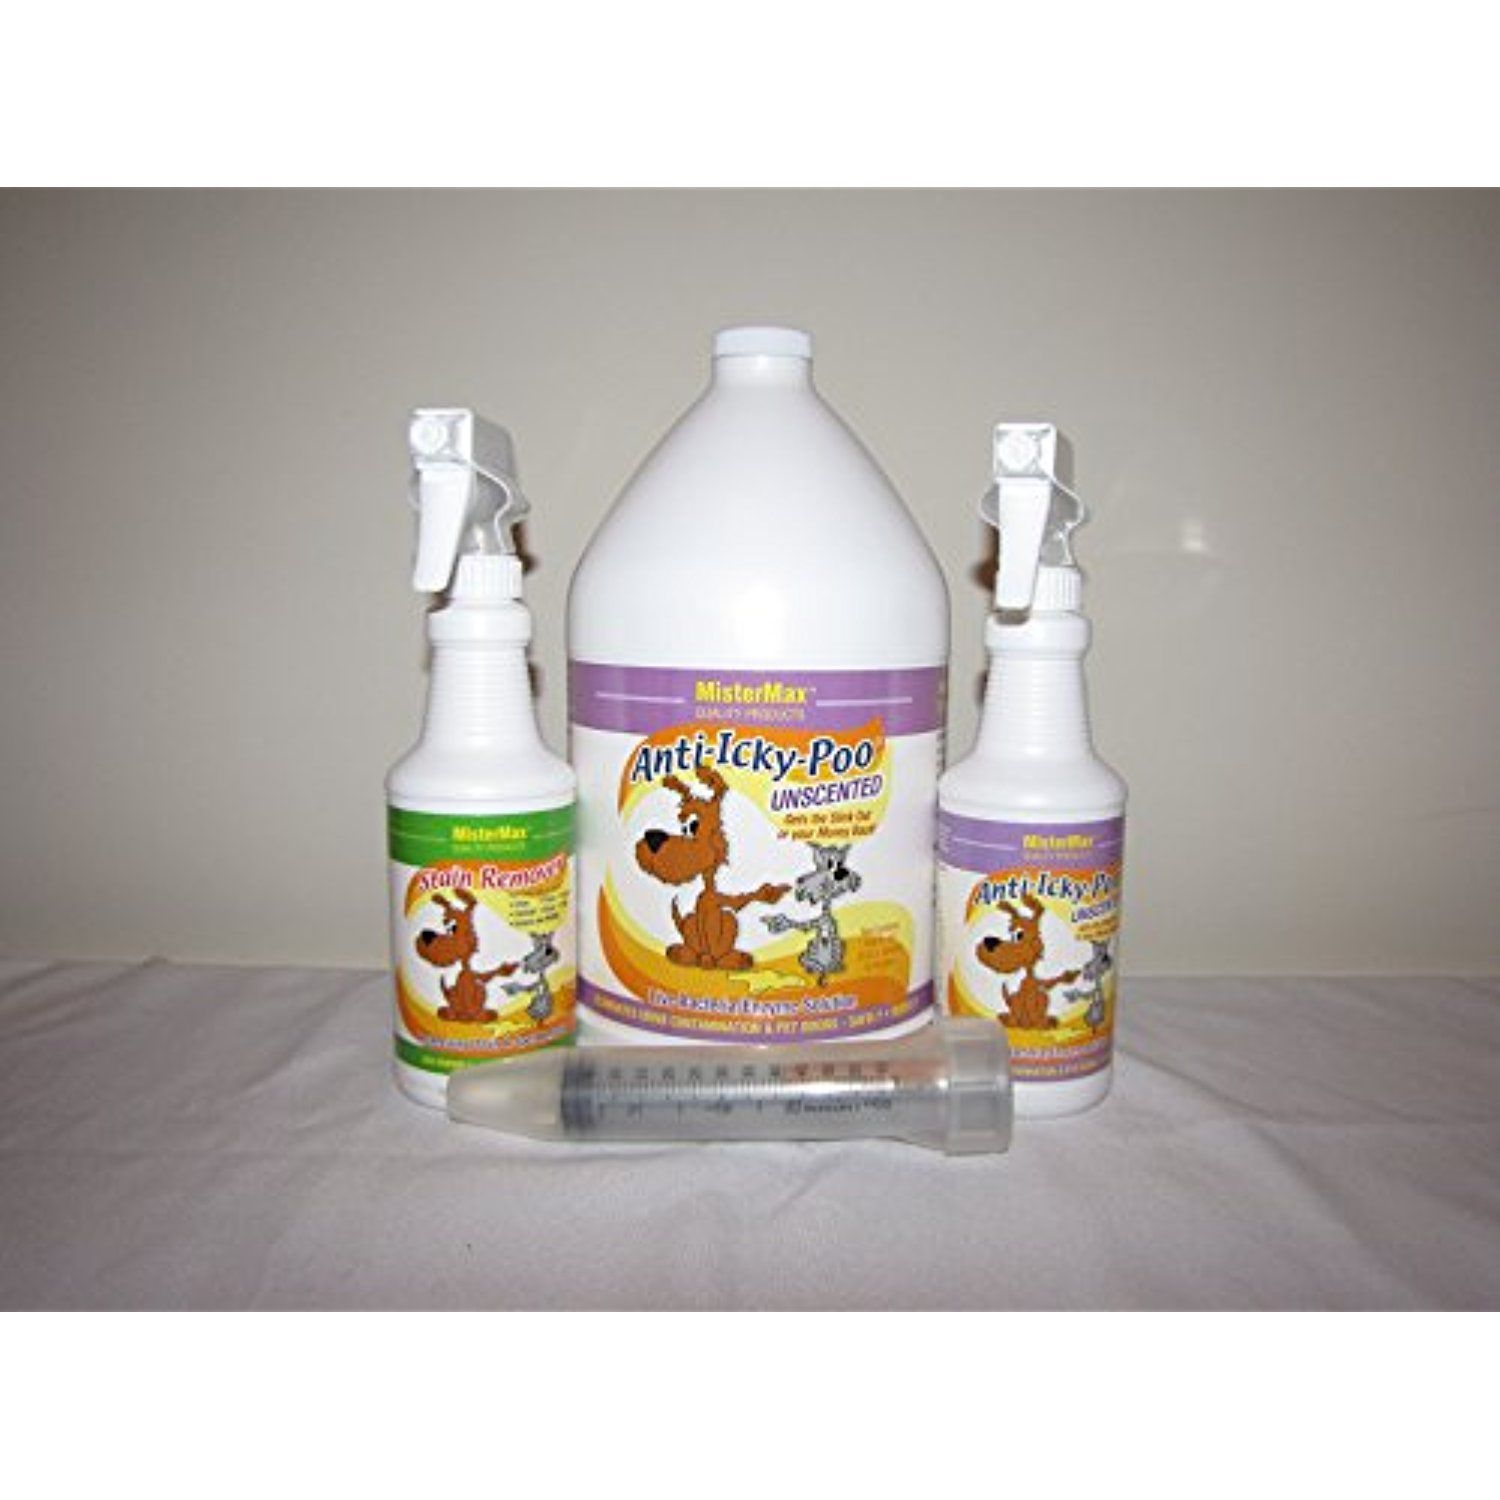 Anti icky poo unscented starter kit junior you can